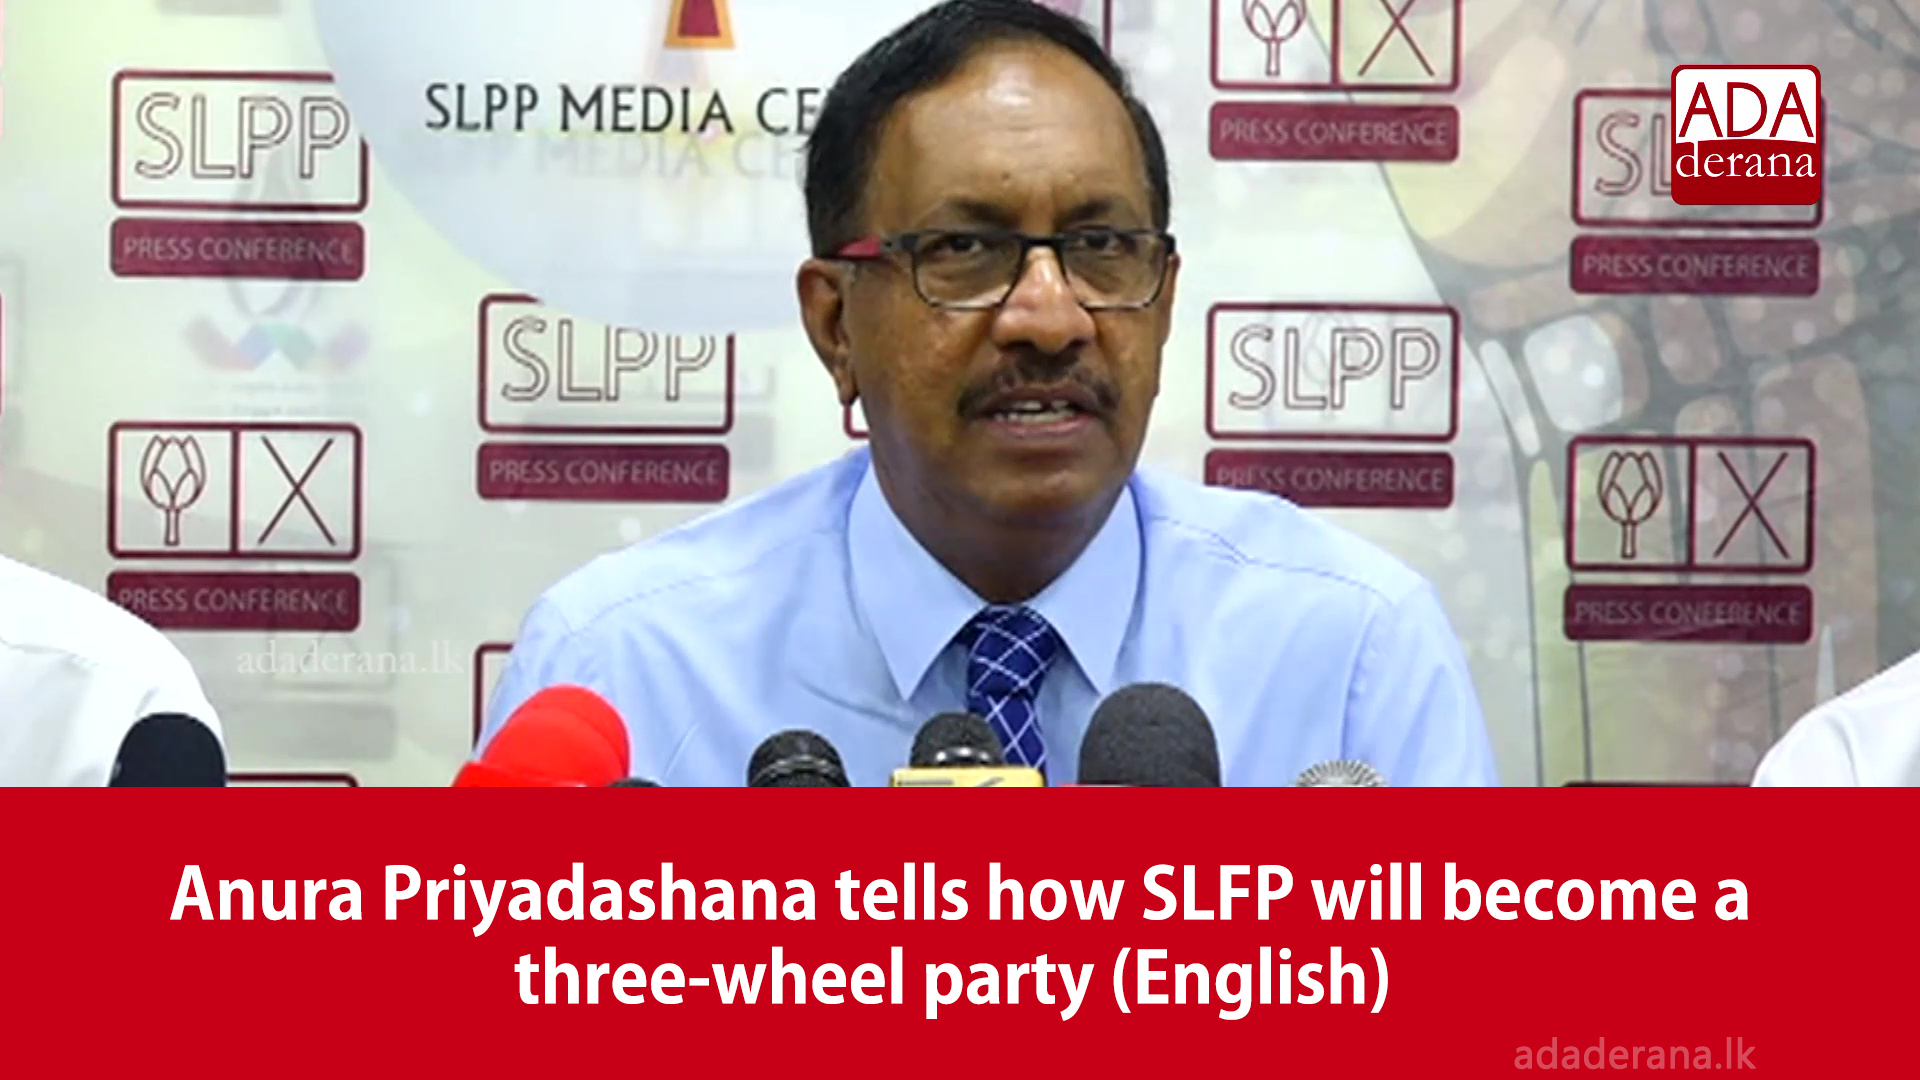 Anura Priyadashana tells how SLFP will become a three-wheel party (English)